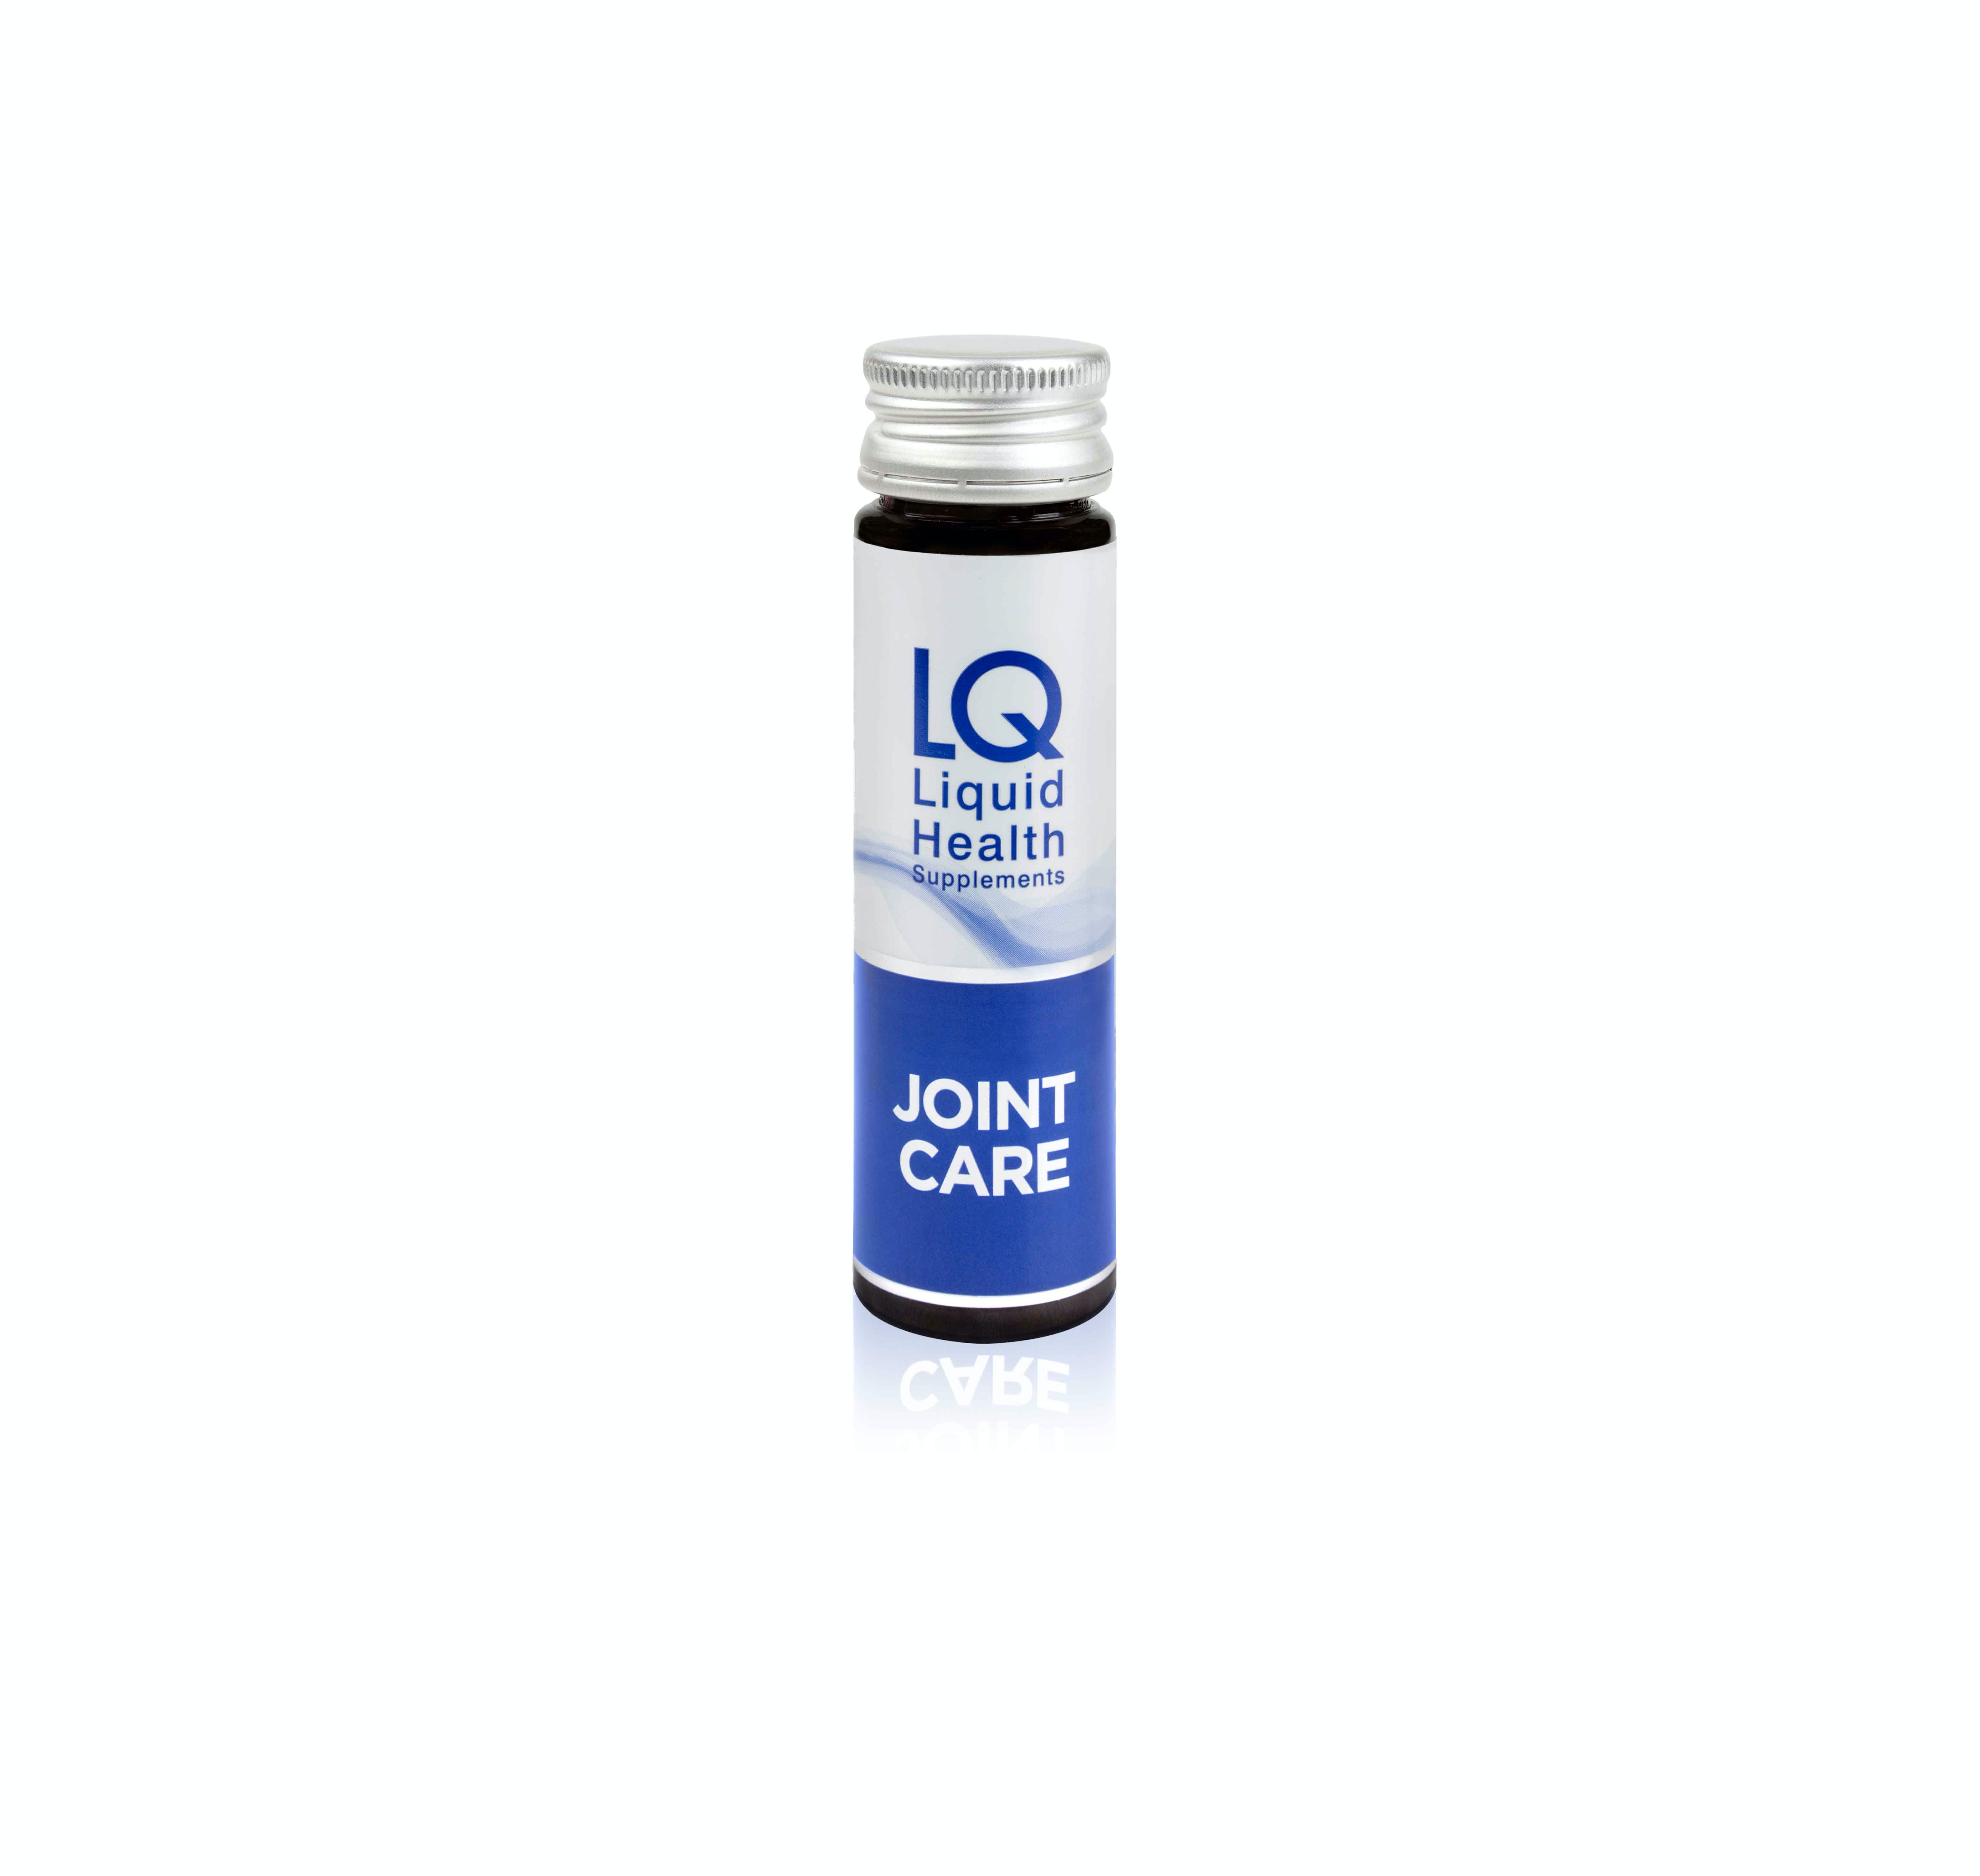 LQ Joint Care liquid health supplements sweepstakes